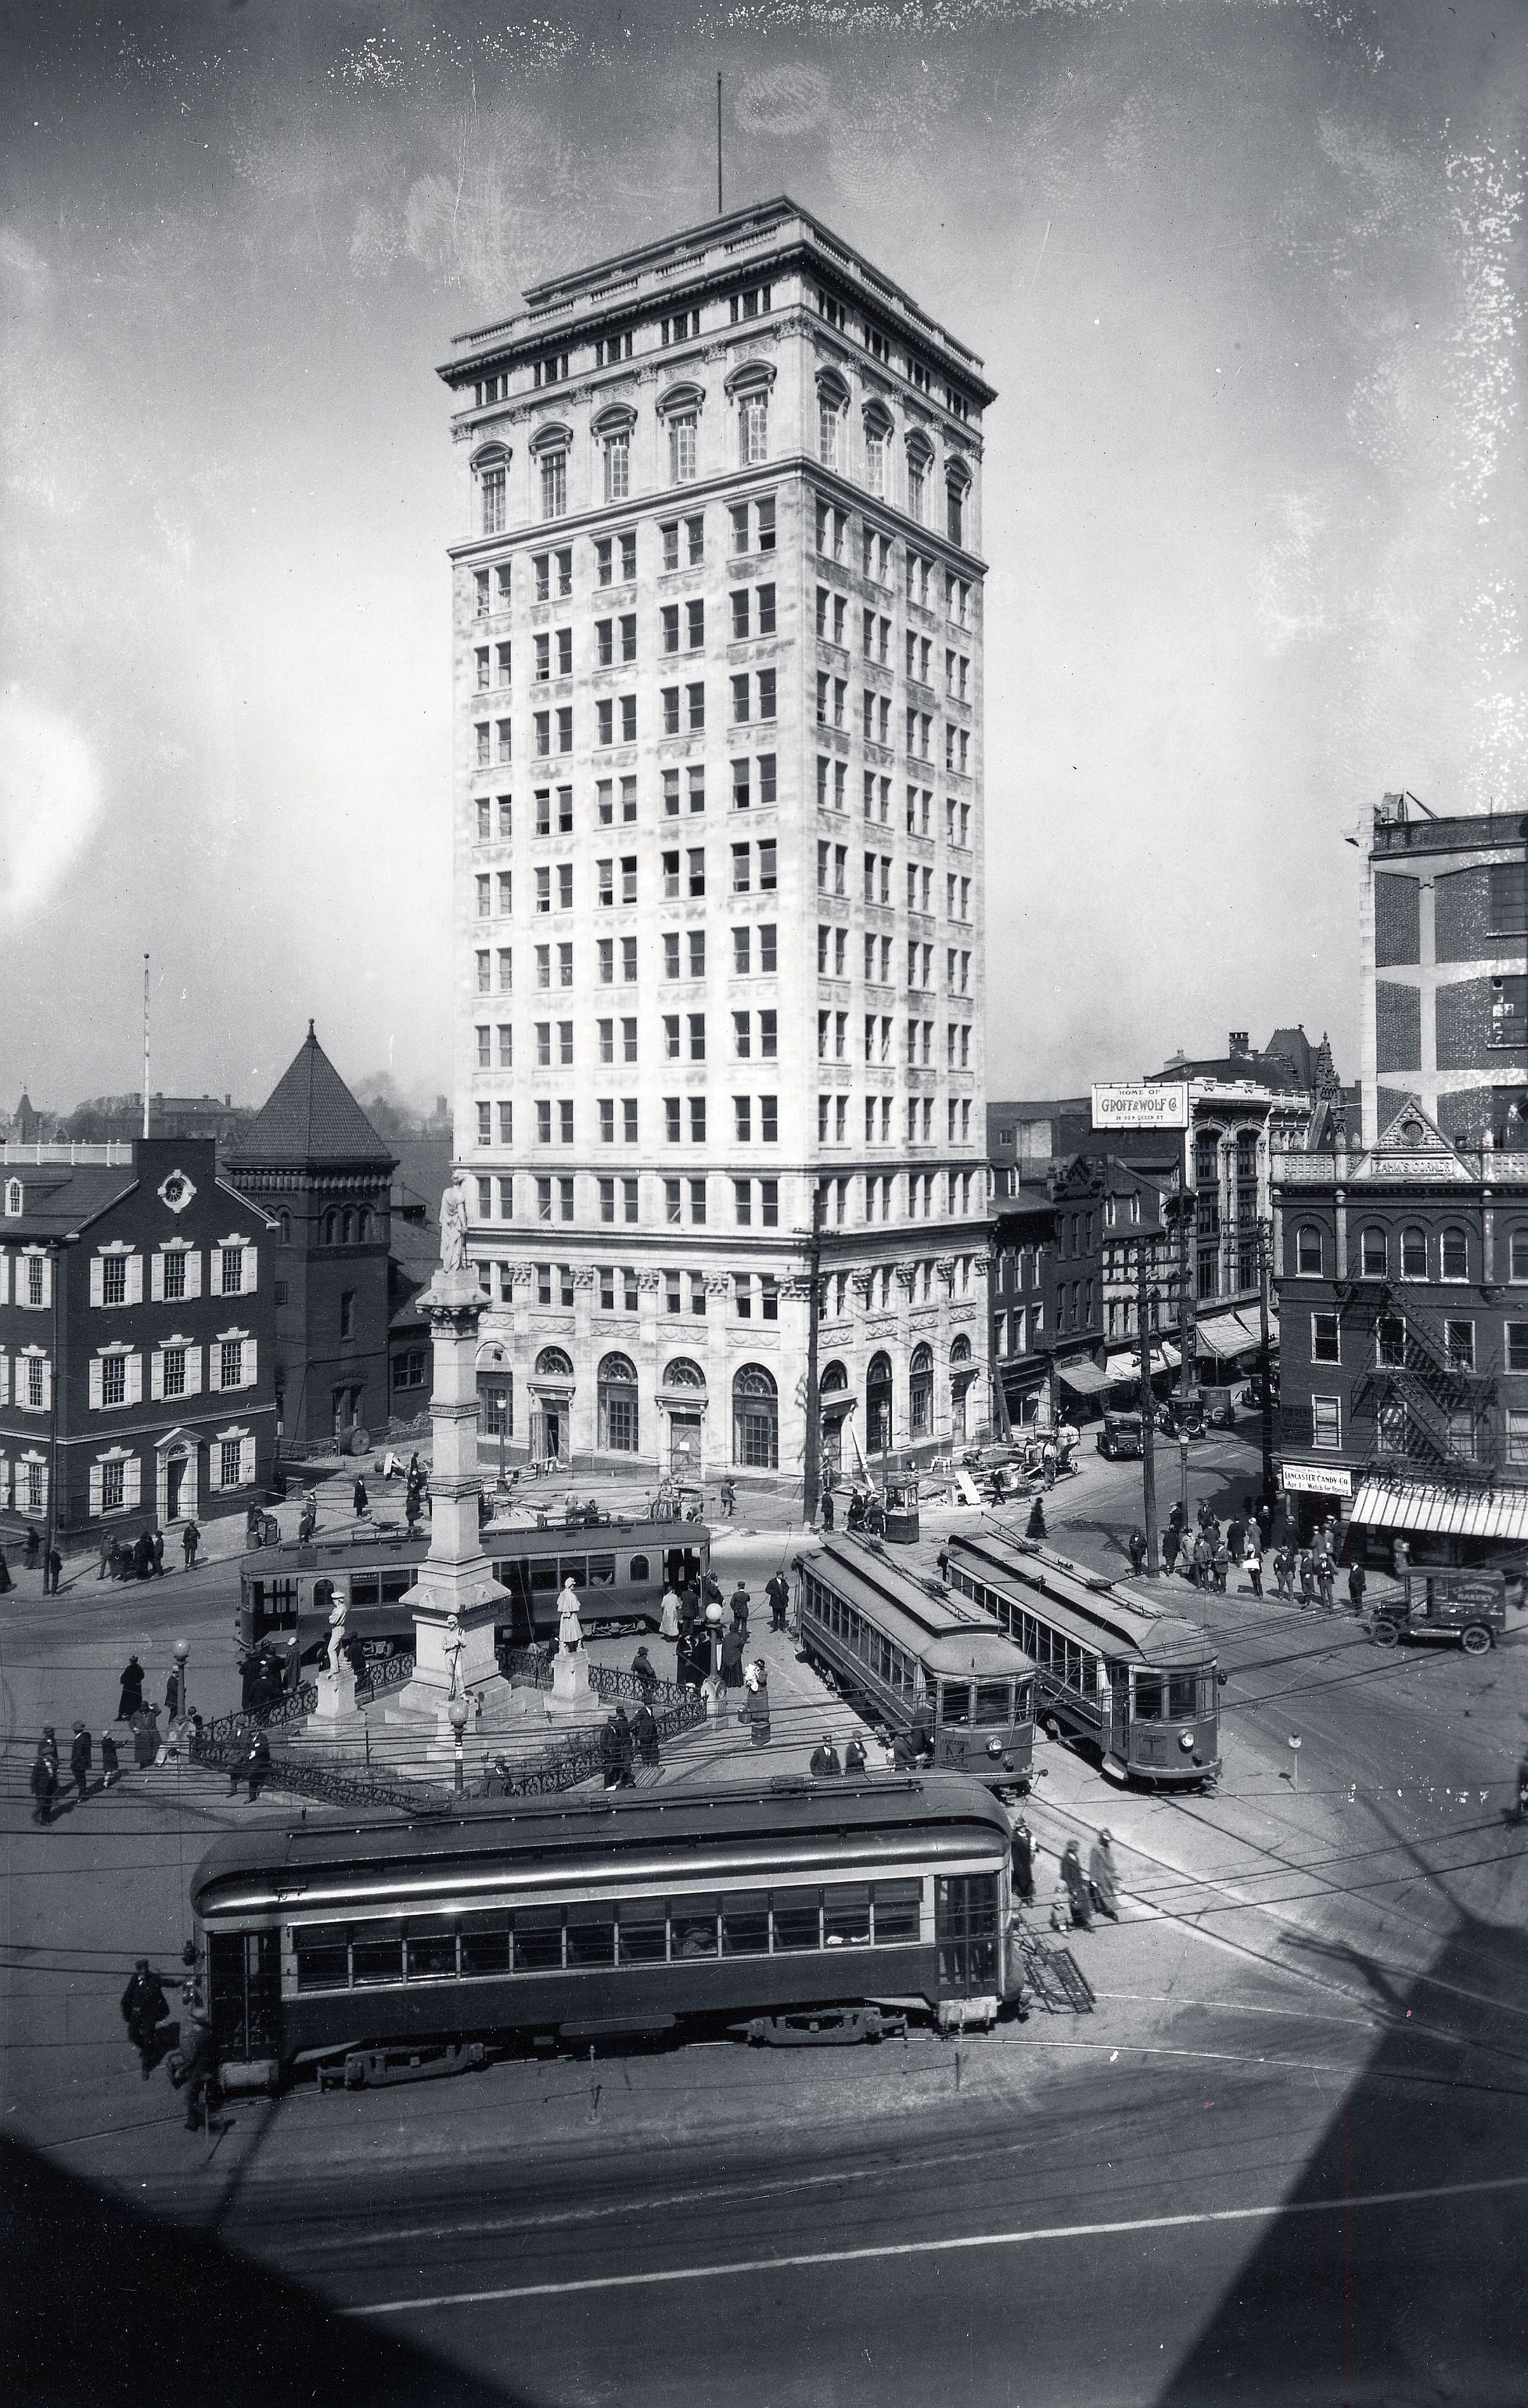 The cornerstone for Lancaster's Griest Building – the city's first skyscraper – was laid in 1924. Completed in 1925 and towering 14 stories over Penn Square, the building was designed by noted architect C. Emlen Urban and named for William Walton Griest, who served in the U.S. House of Representatives from 1909 to 1929.